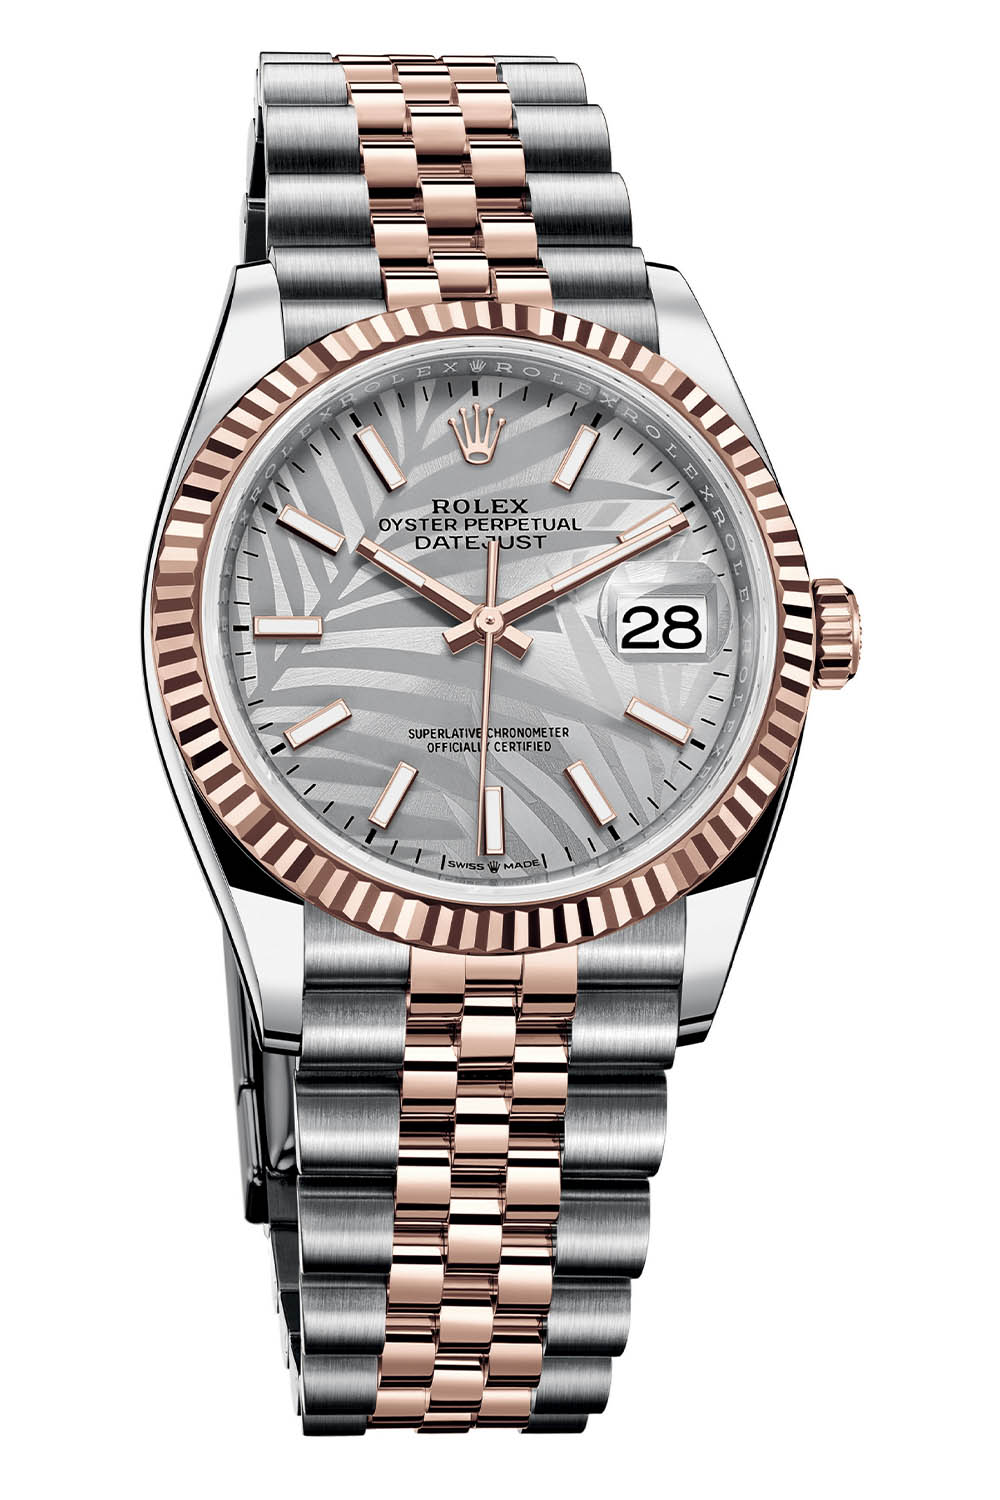 Rolex Oyster Perpetual Datejust 36 palm dial 3